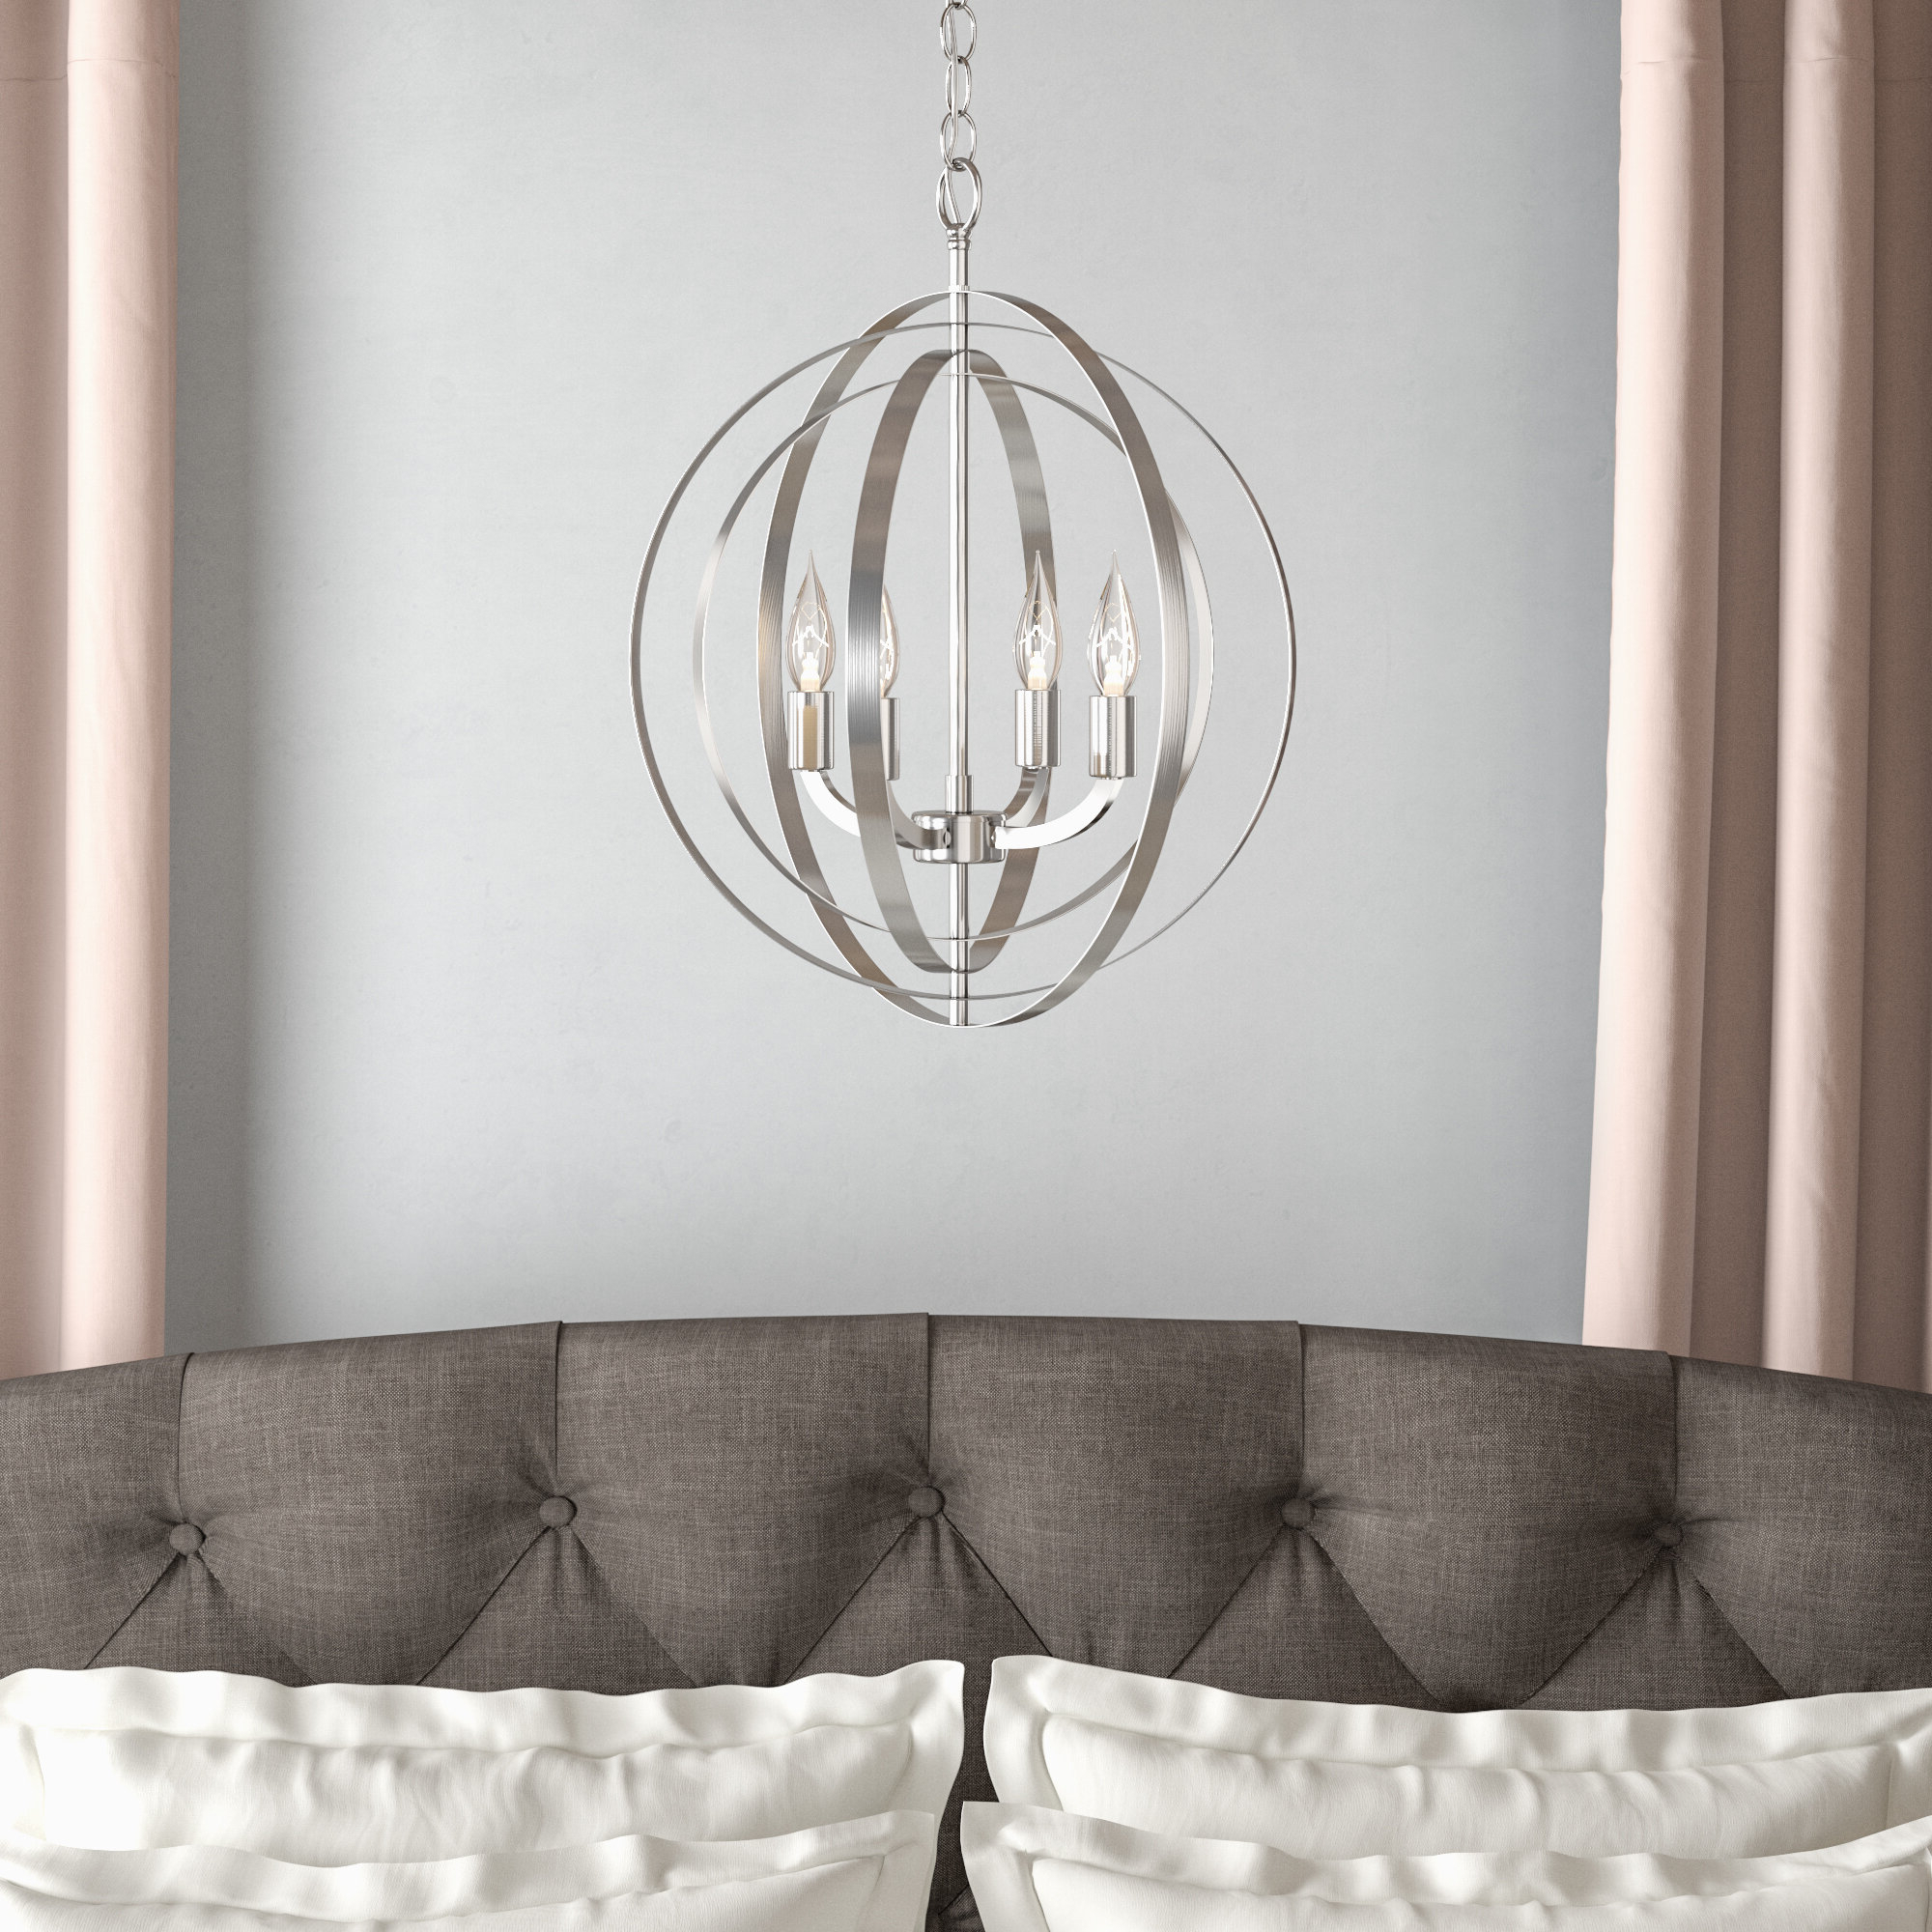 Most Up To Date Willa Arlo Interiors Hendry 4 Light Globe Chandelier Throughout Hendry 4 Light Globe Chandeliers (View 5 of 25)